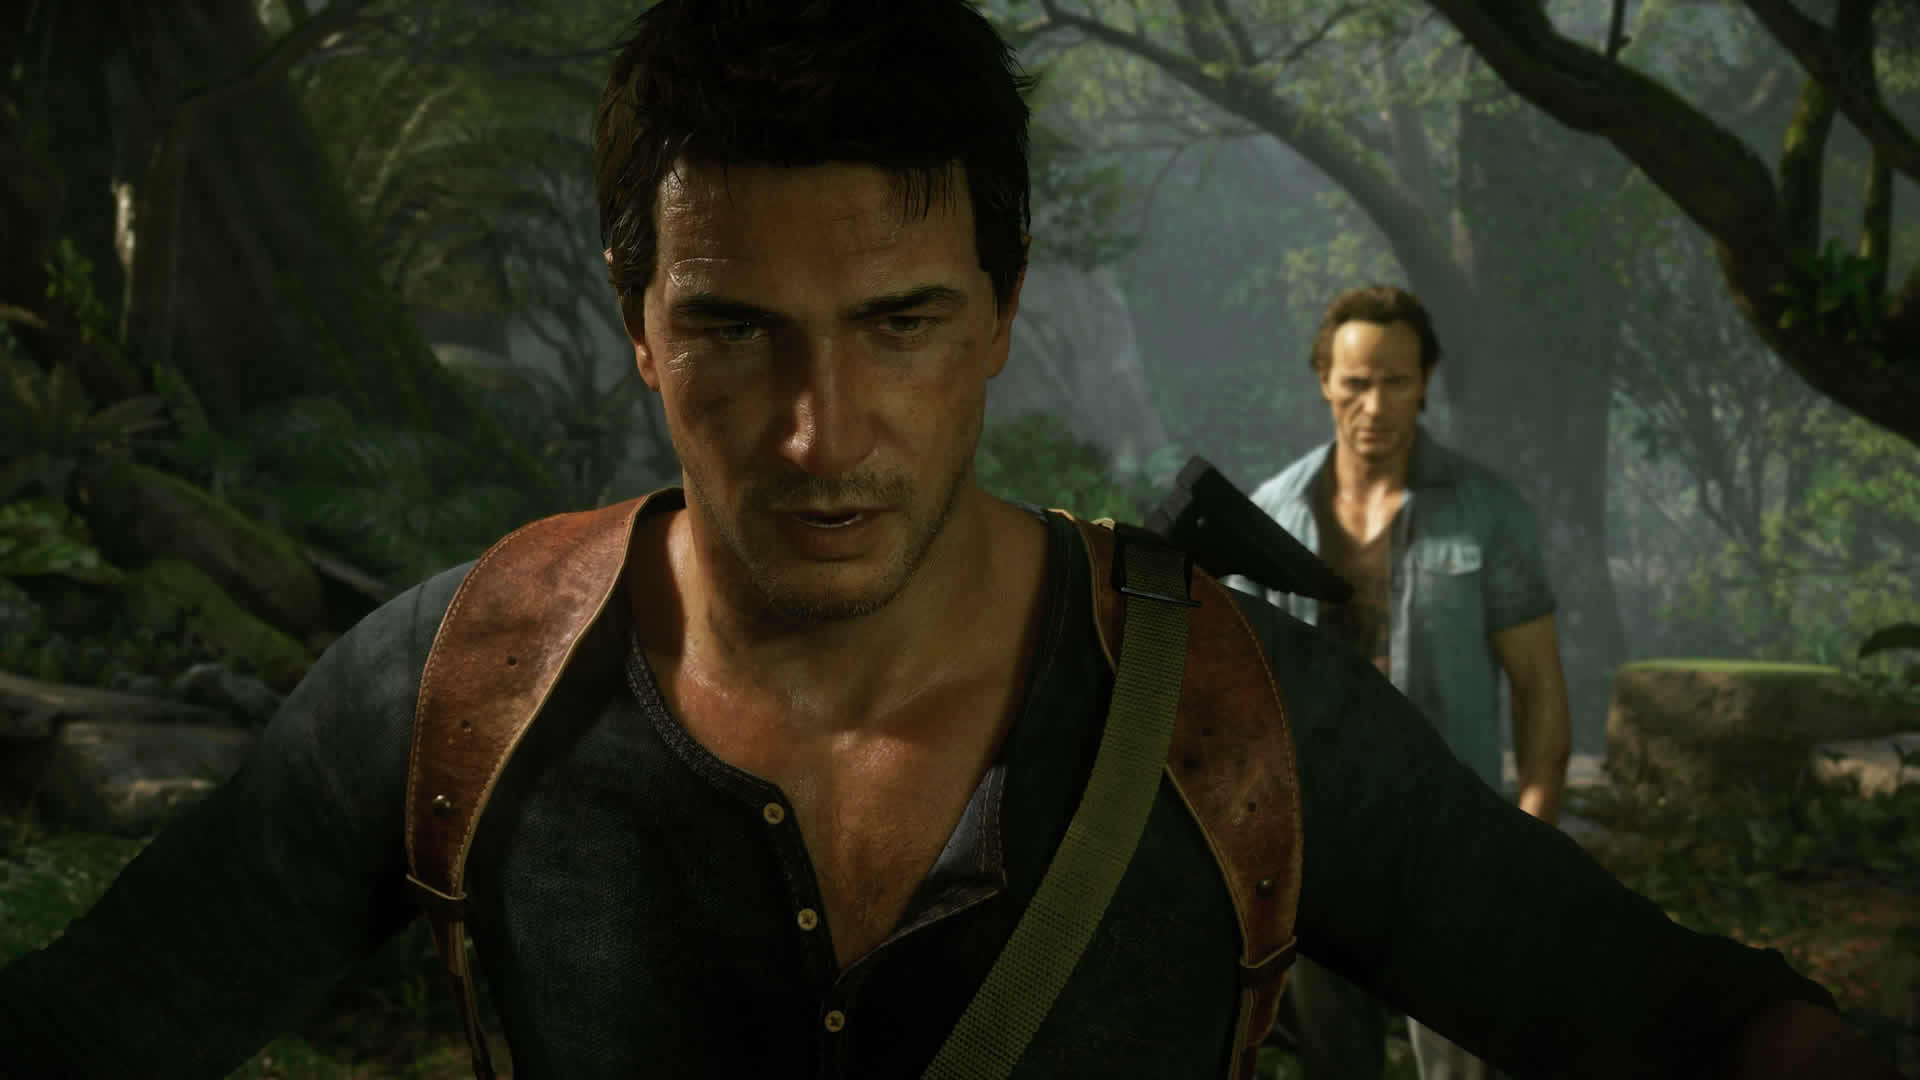 Uncharted 4 Beta Will Run From December 4 To December 13